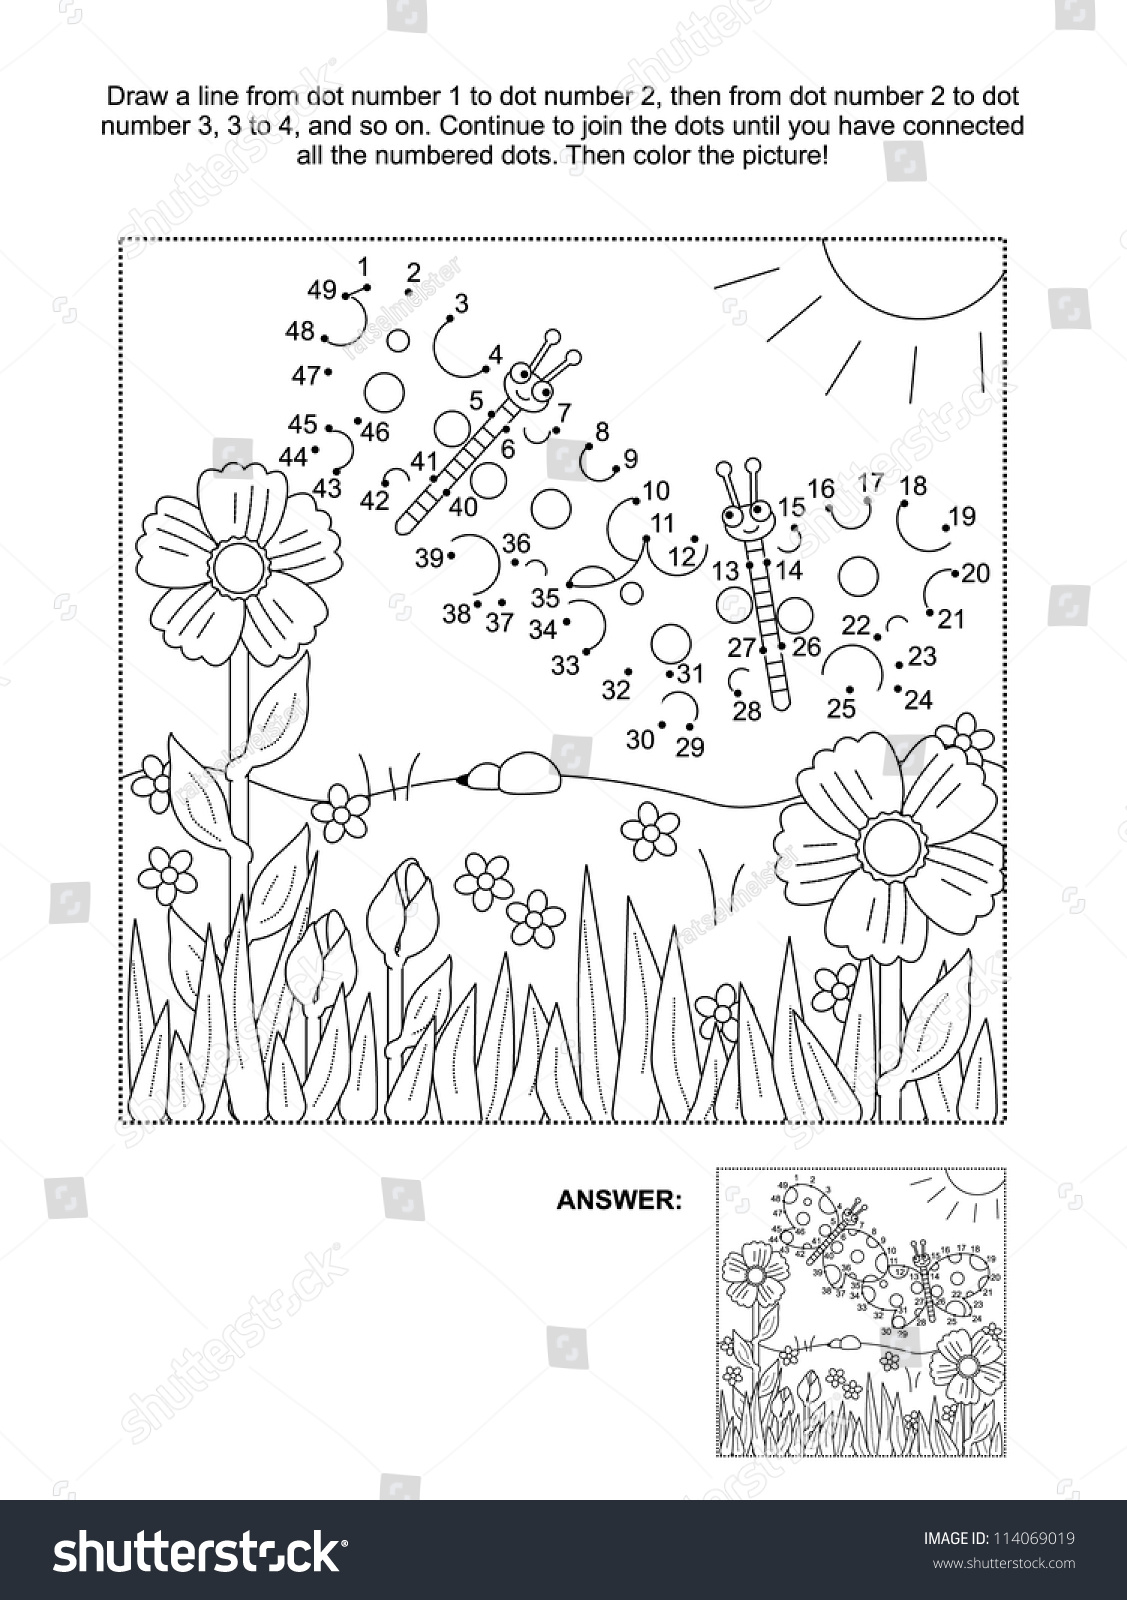 connect dots picture puzzle coloring page stock illustration